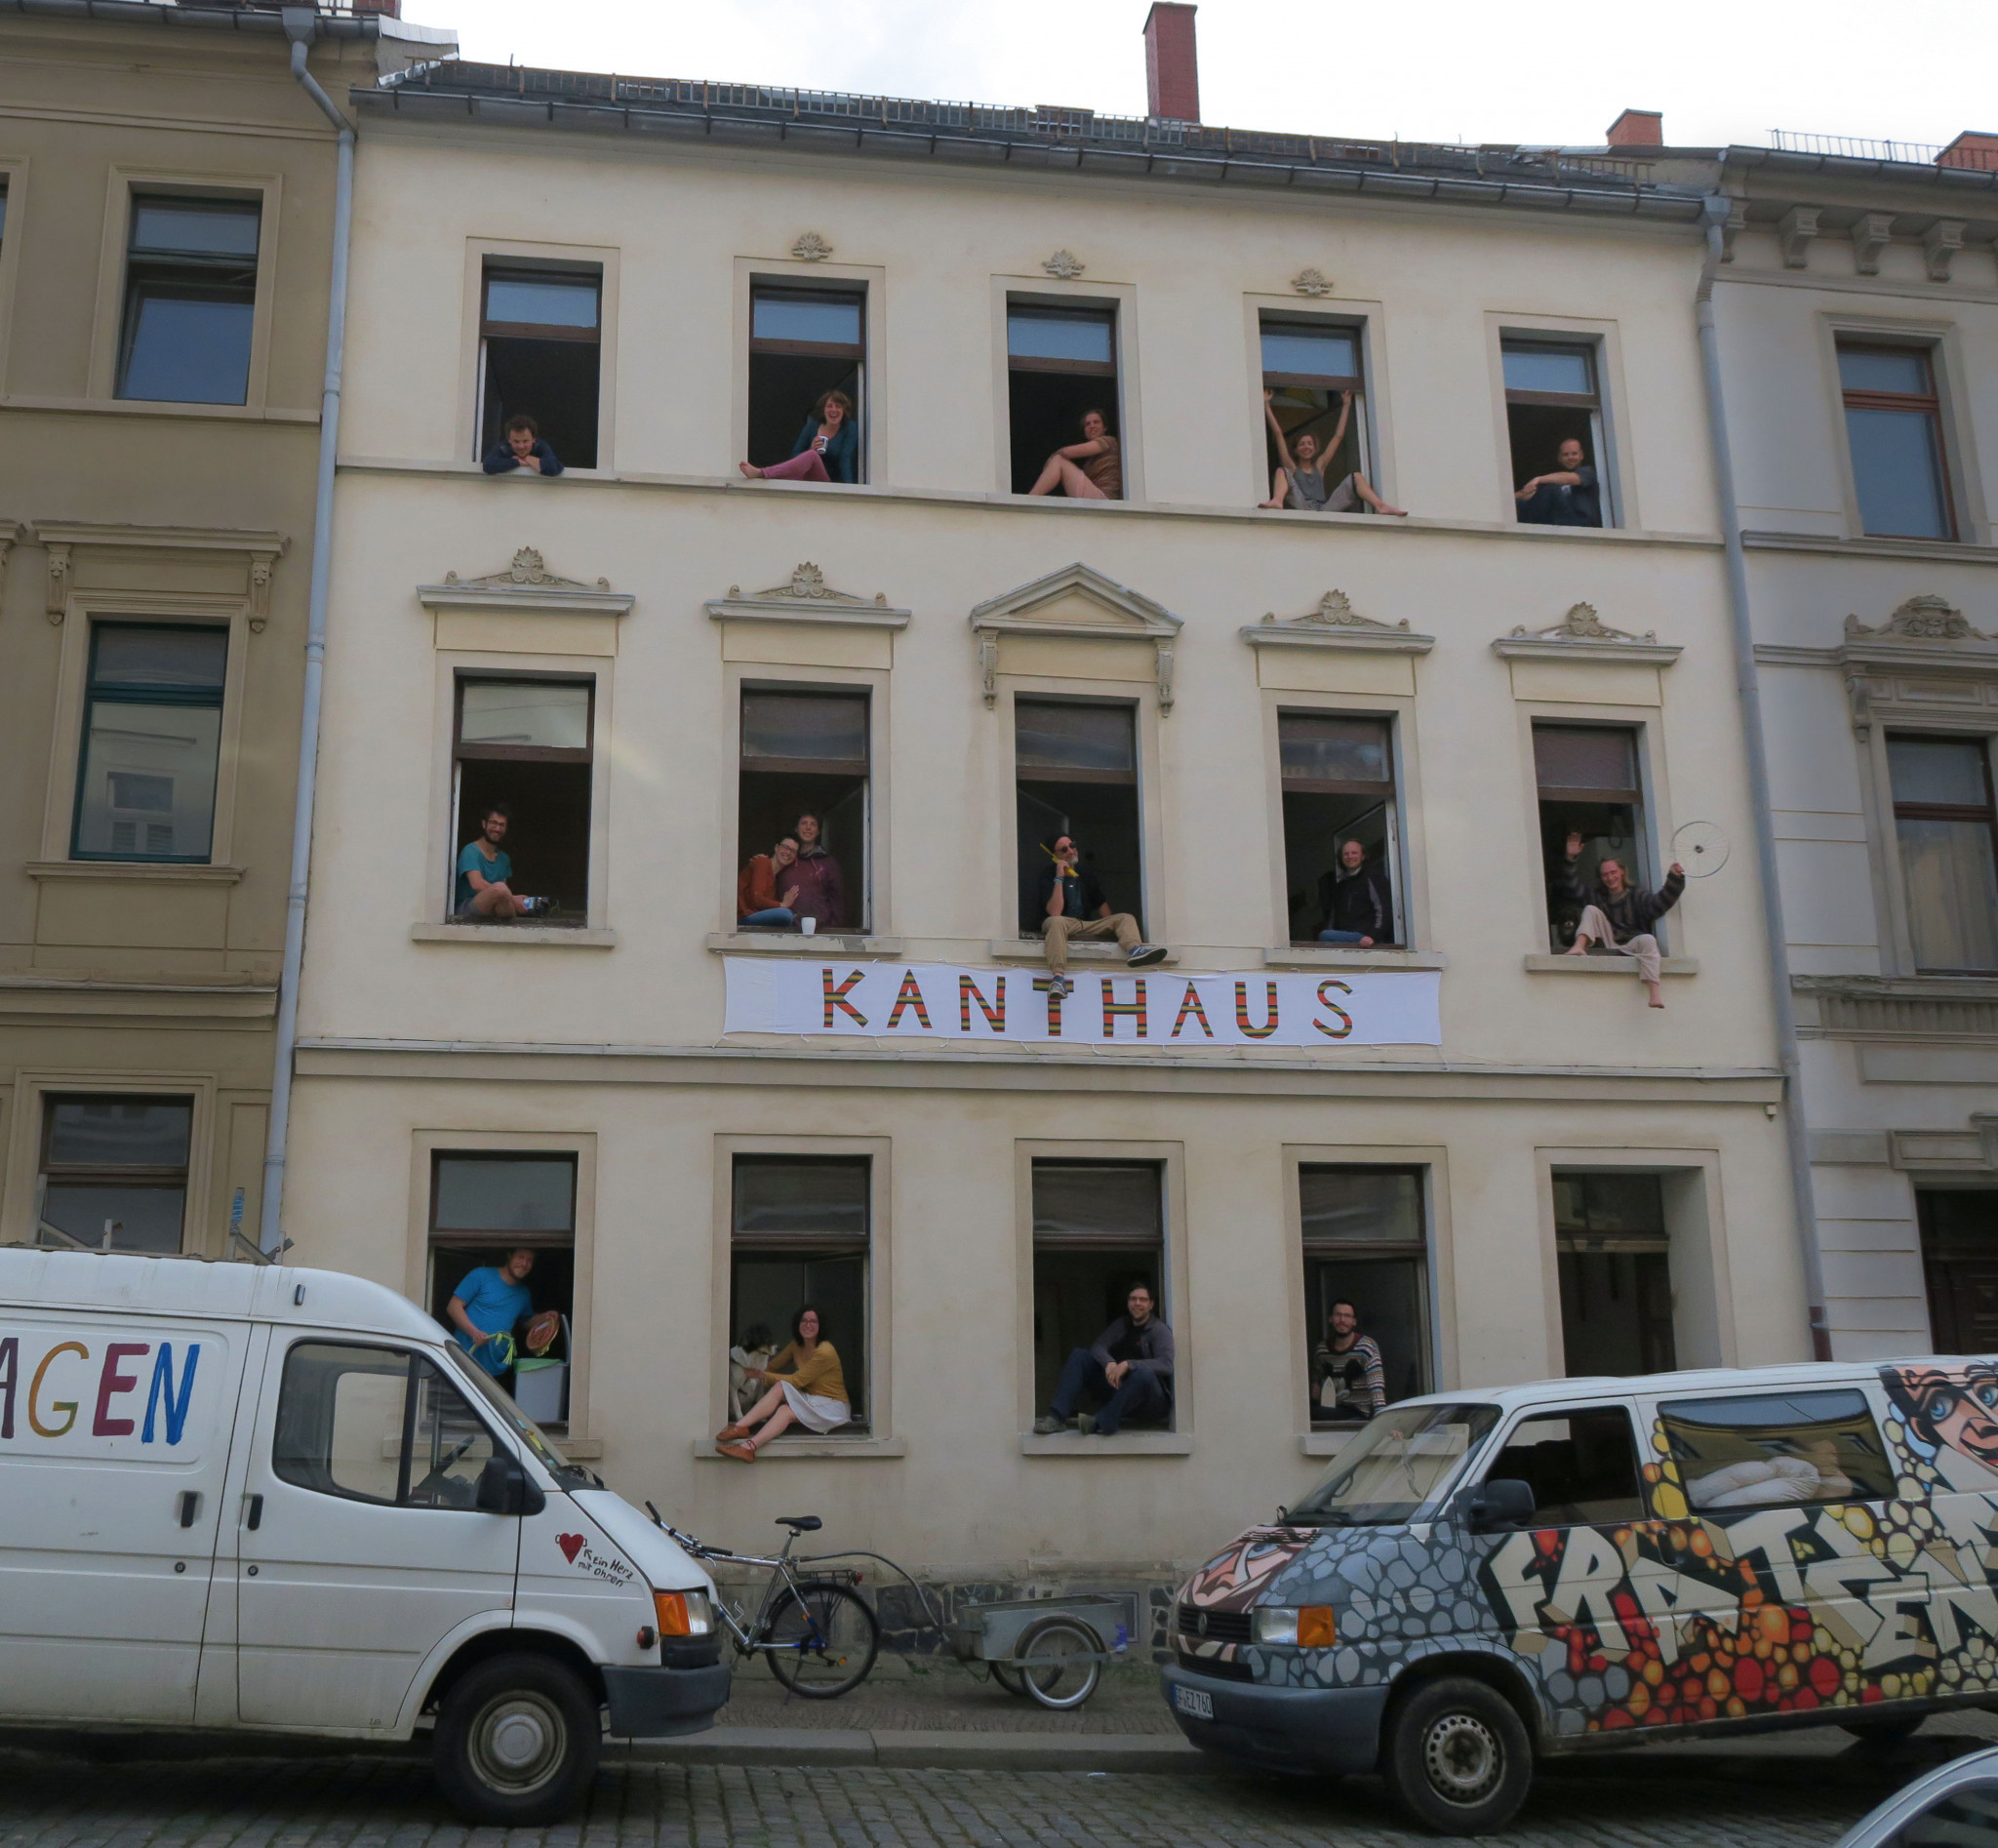 A street-view of an old building with happy people waving out of the windows.